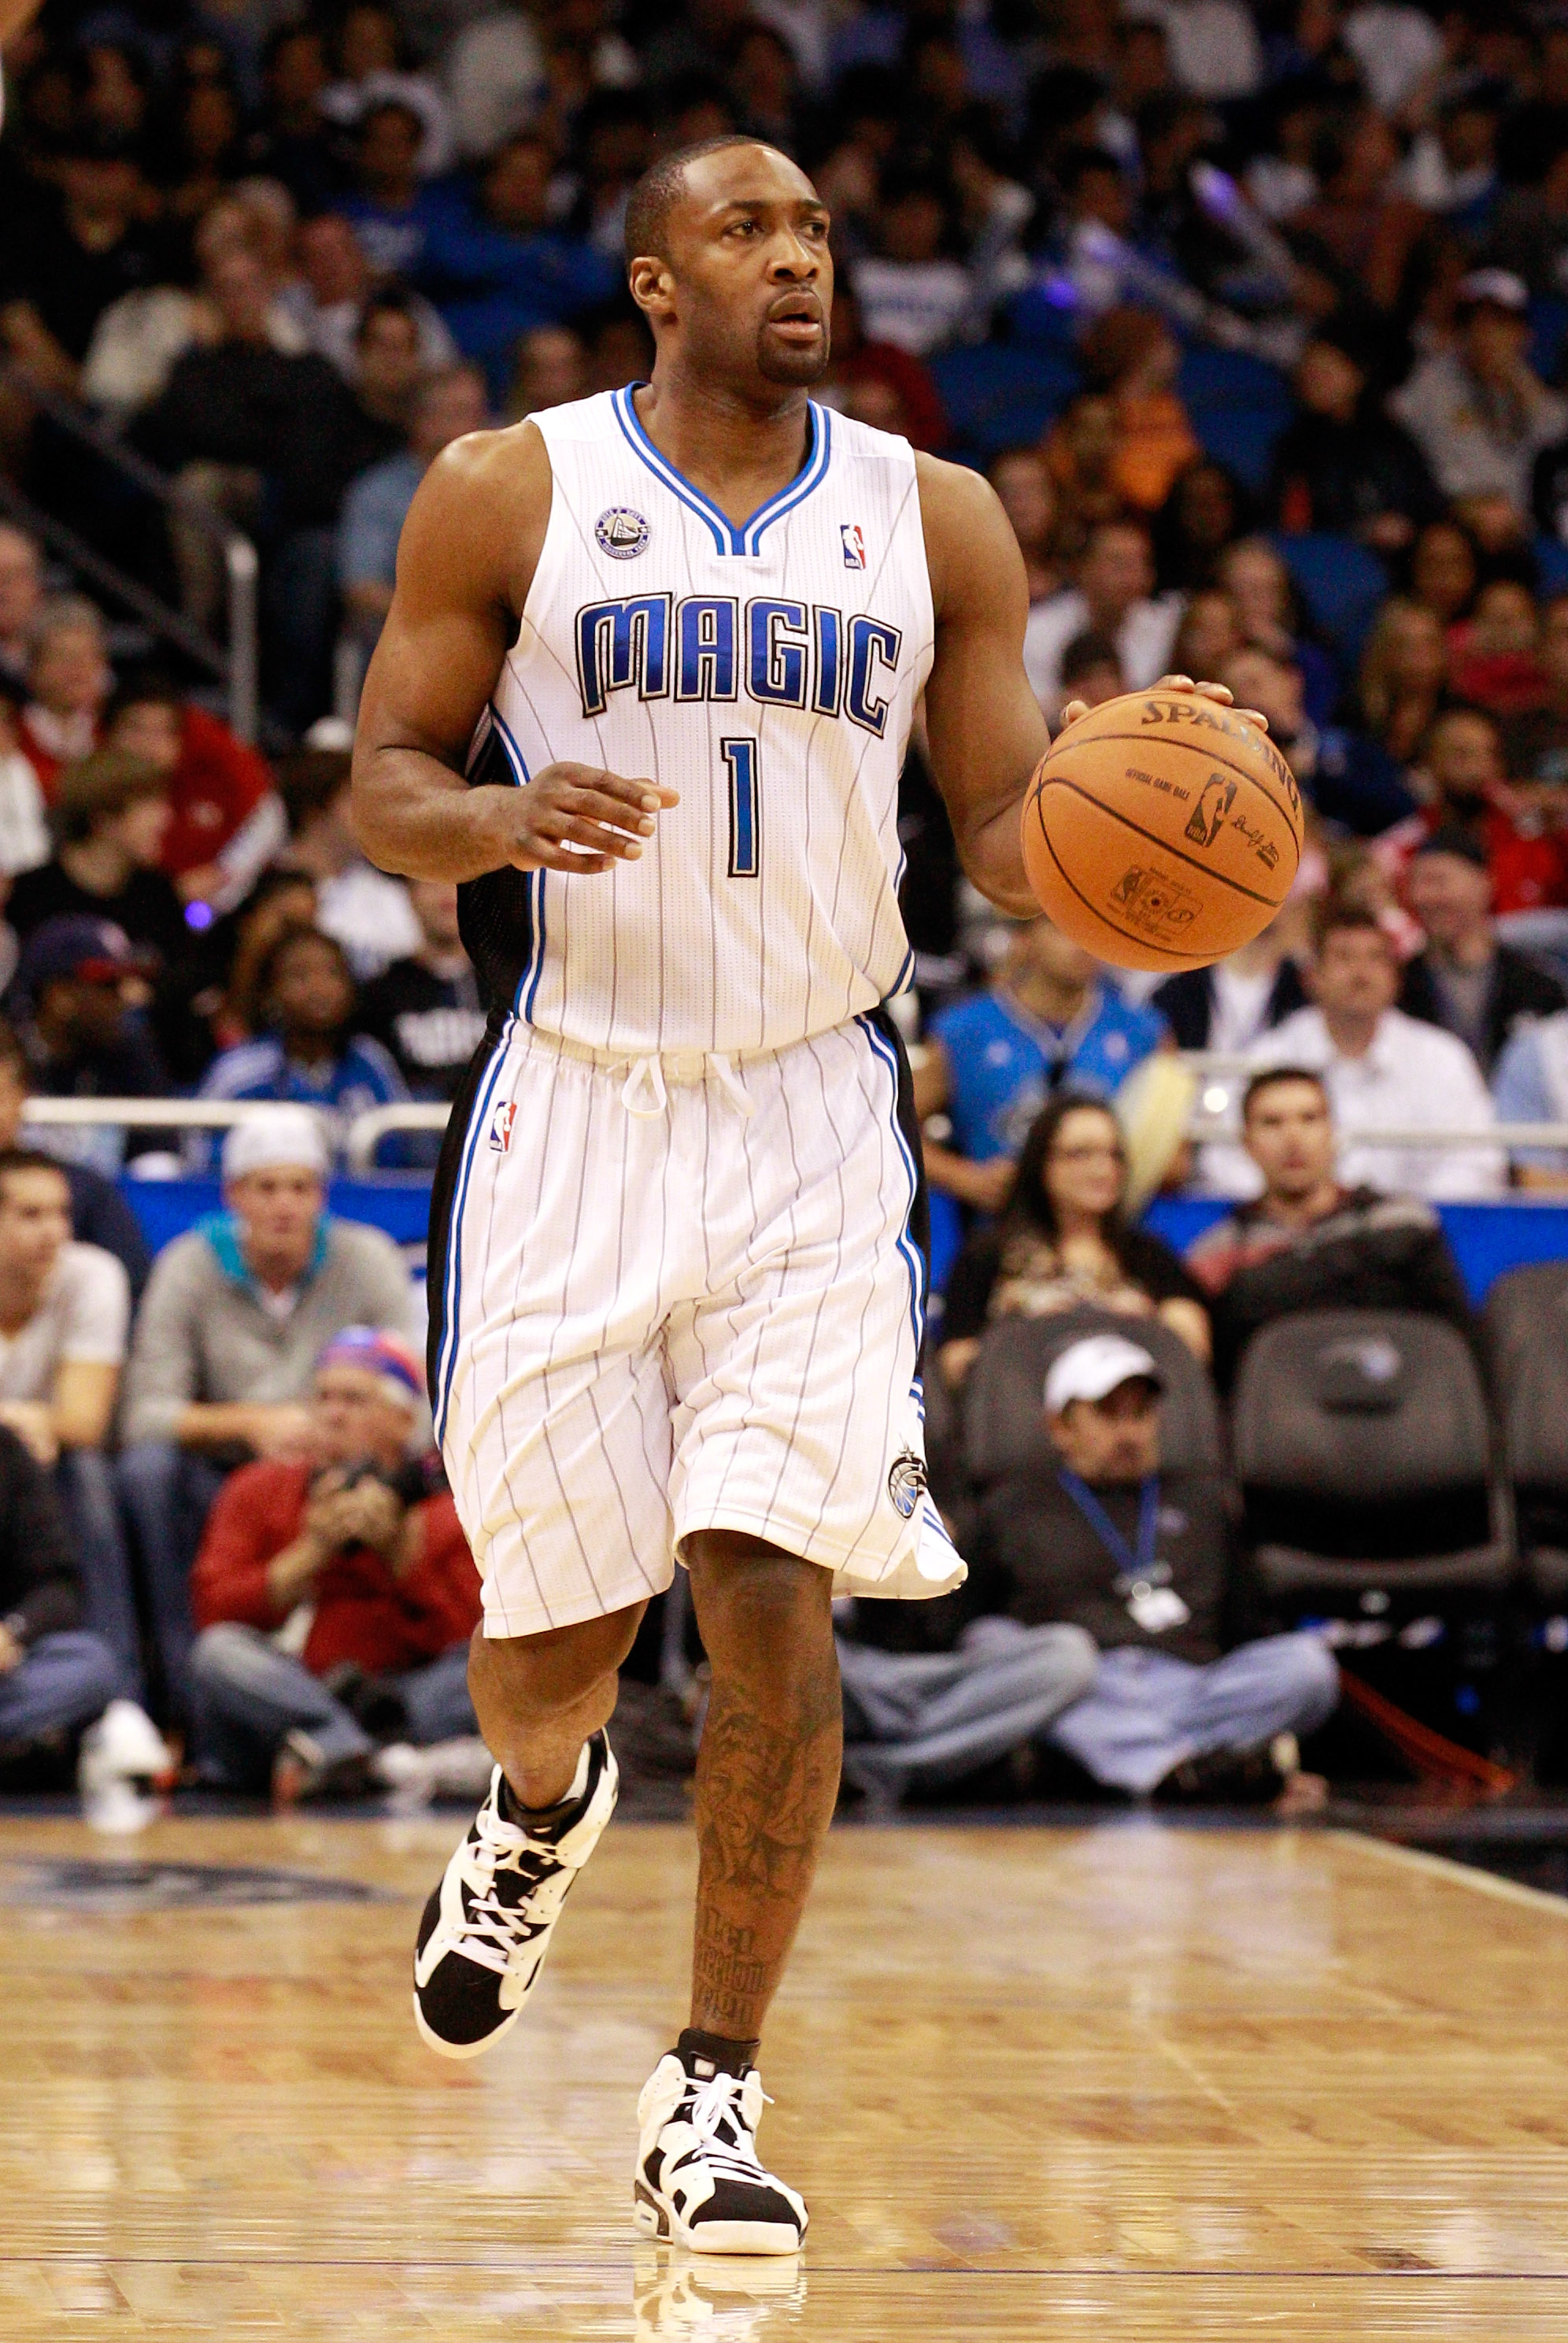 ORLANDO, FL - JANUARY 24:  Gilbert Arenas #1 of the Orlando Magic sets up a play during the game against the Detroit Pistons at Amway Arena on January 24, 2011 in Orlando, Florida.  NOTE TO USER: User expressly acknowledges and agrees that, by downloading